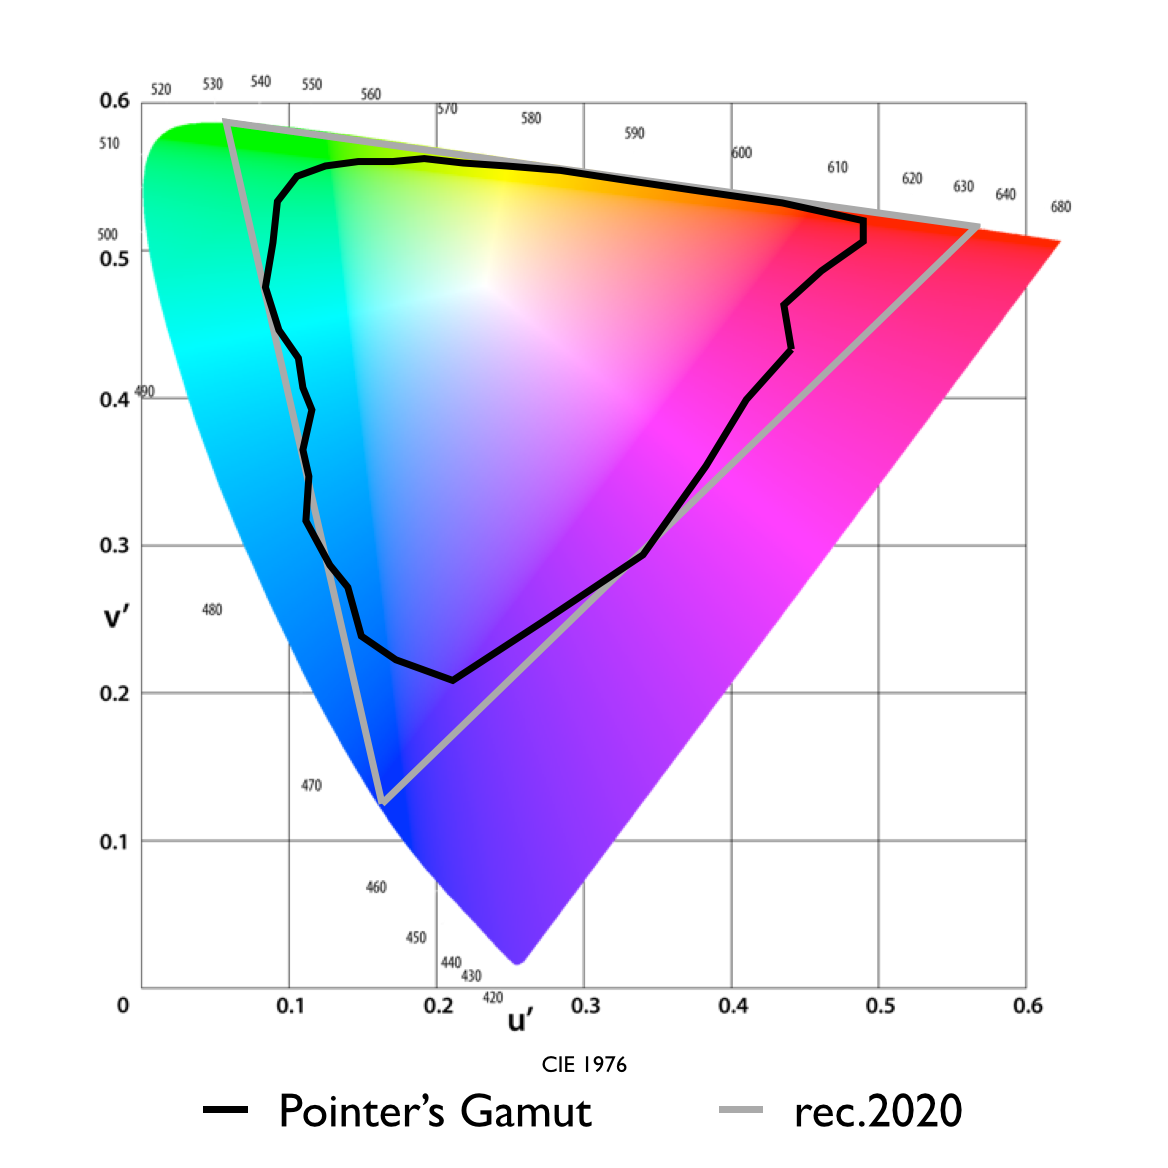 rec.2020 needs a very saturated green and red primaries to cover 99.9% of Pointer's Gamut